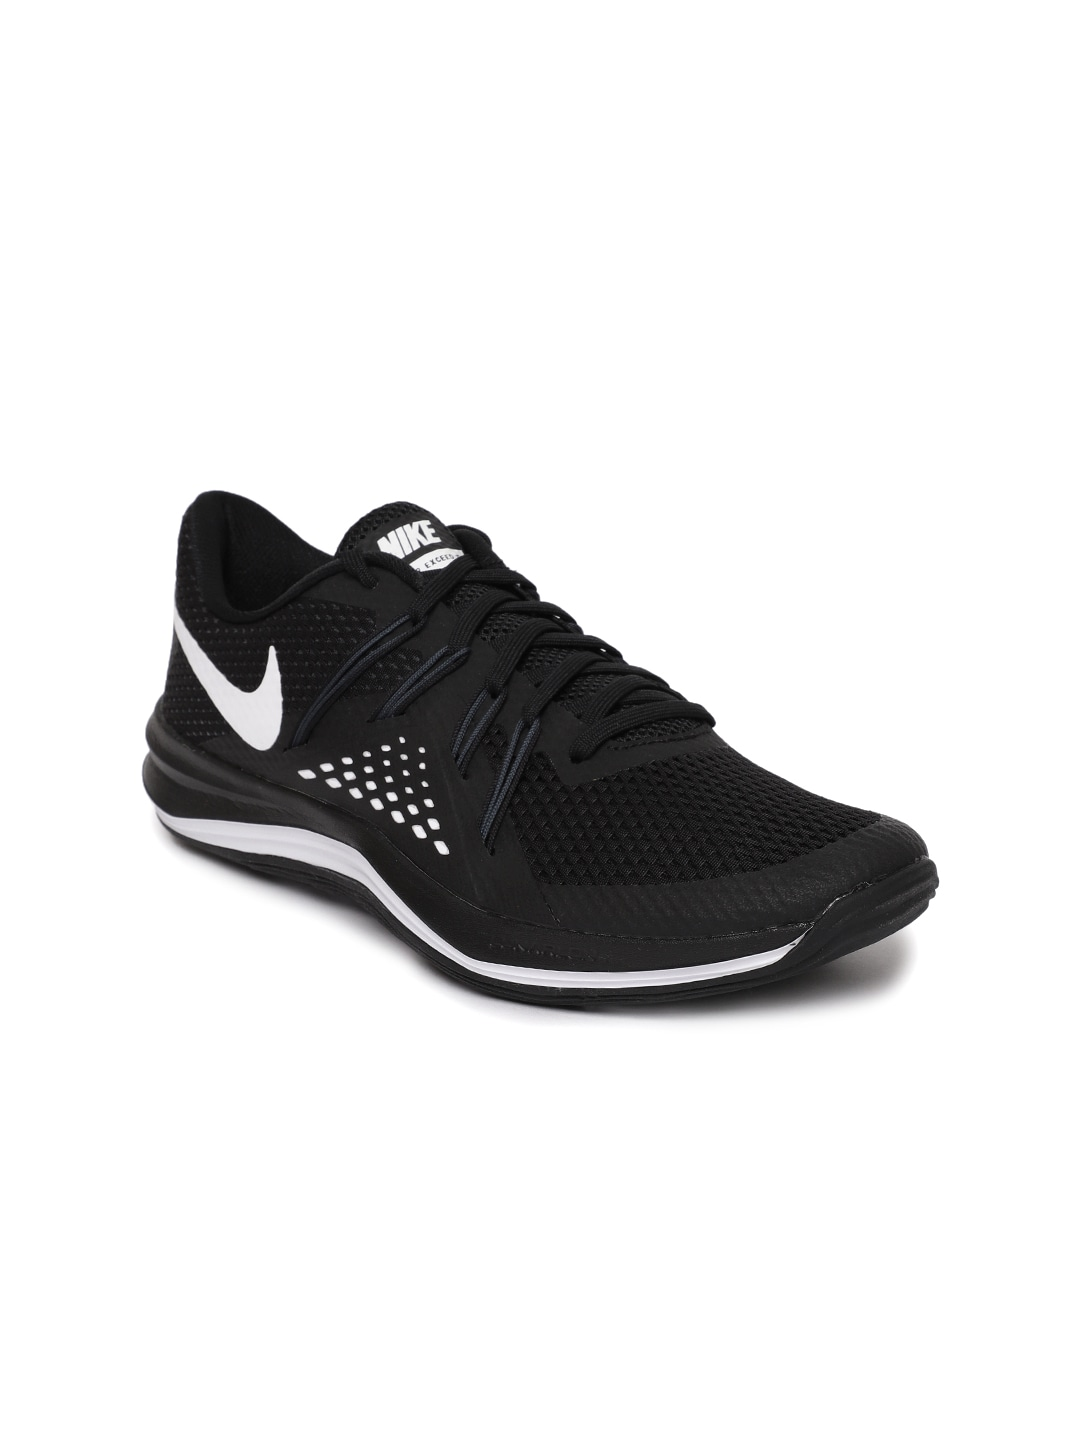 cheap for discount 24d1c 5a571 Nike Training Shoes - Buy Nike Training Shoes For Men   Women in India